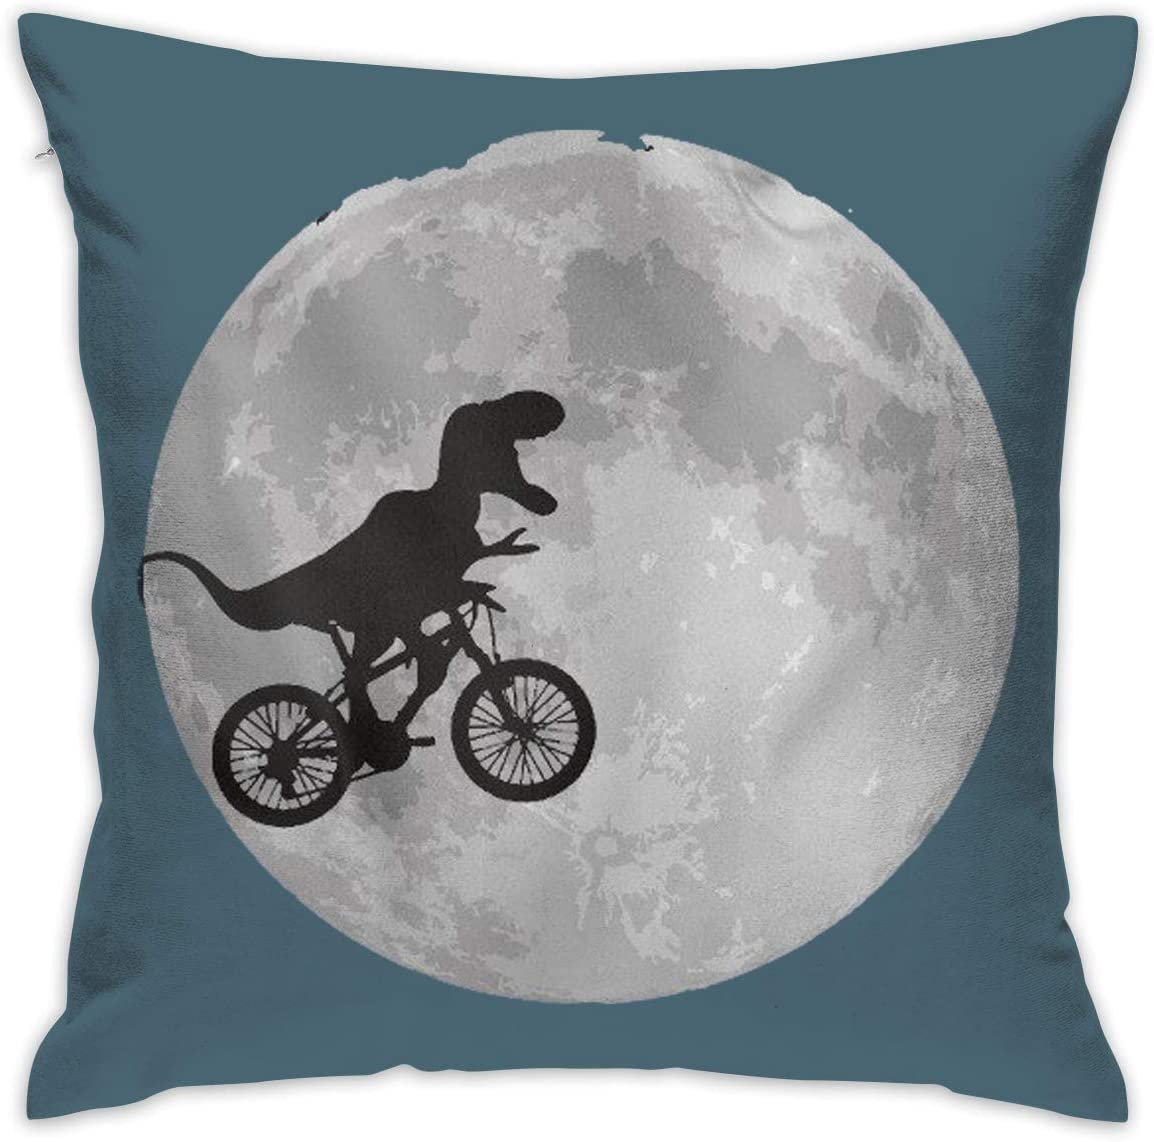 Crazy Popo Rex Bicycle Moon Dinosaur Decorative Throw Pillow Covers Euro Sham Cushion Sham Square Cushion Case Pillowcases For Living Room Sofa Bedroom Car 18 X 18 Inch 45 X 45 Cm Amazon Co Uk Kitchen